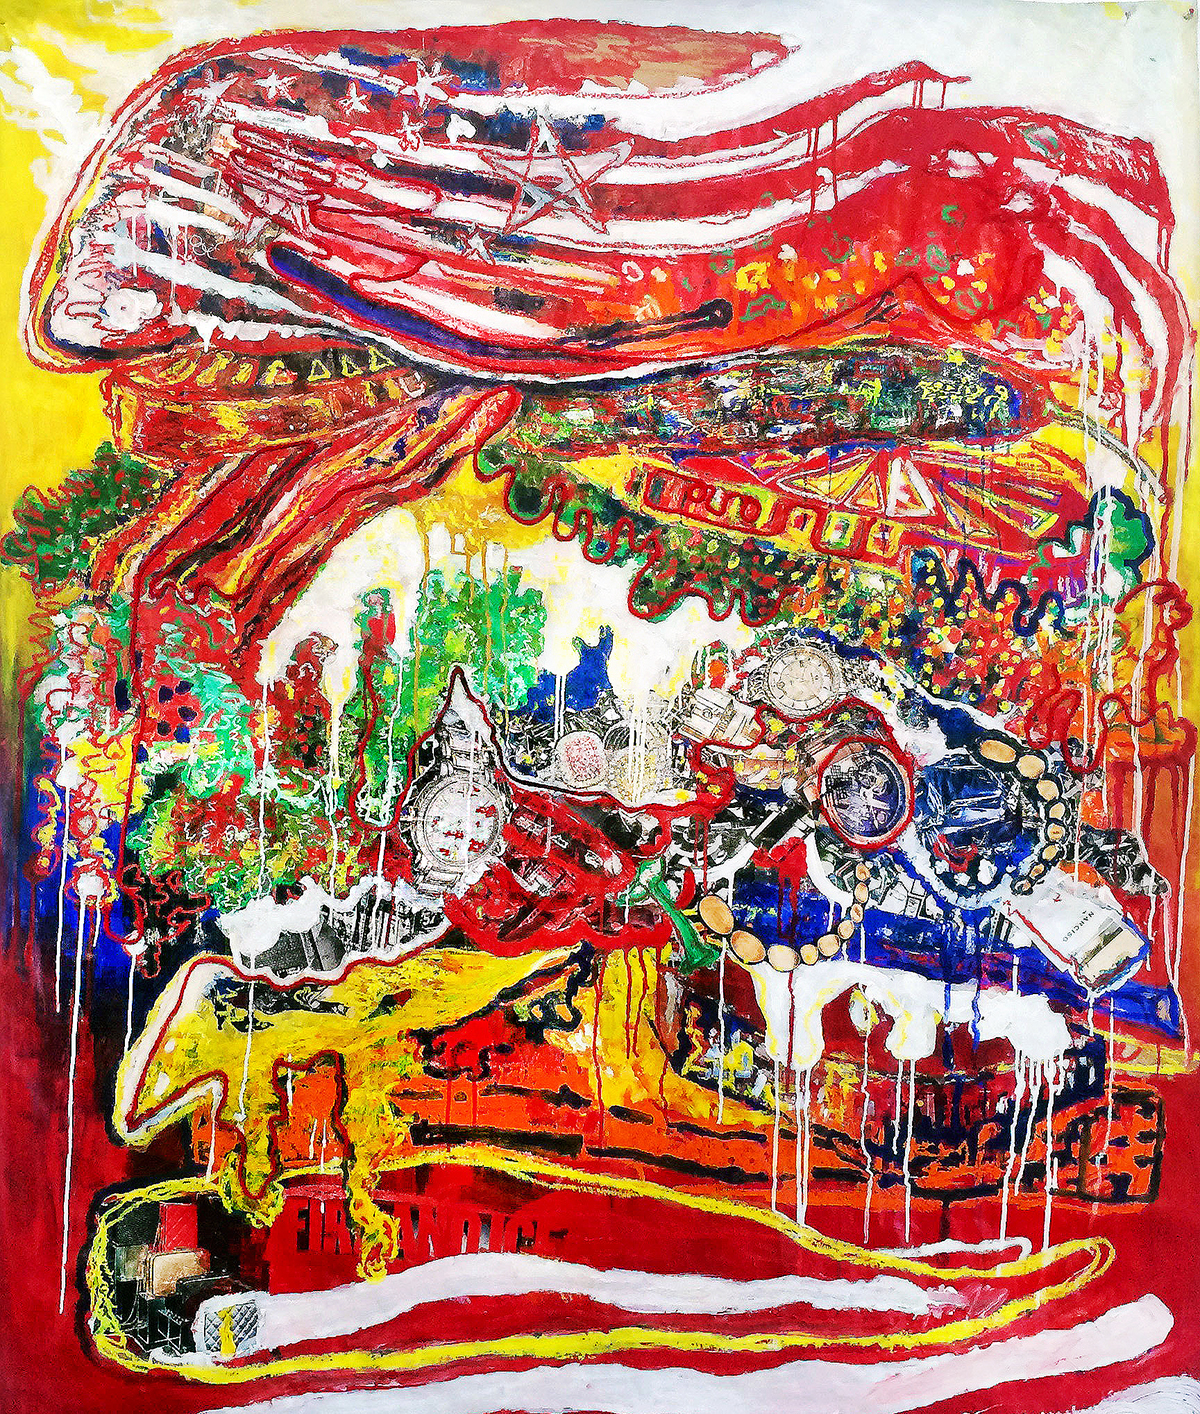 American Consumerism - 6' X 4' - Mixed Media on Paper - For Sale - Price Upon Request